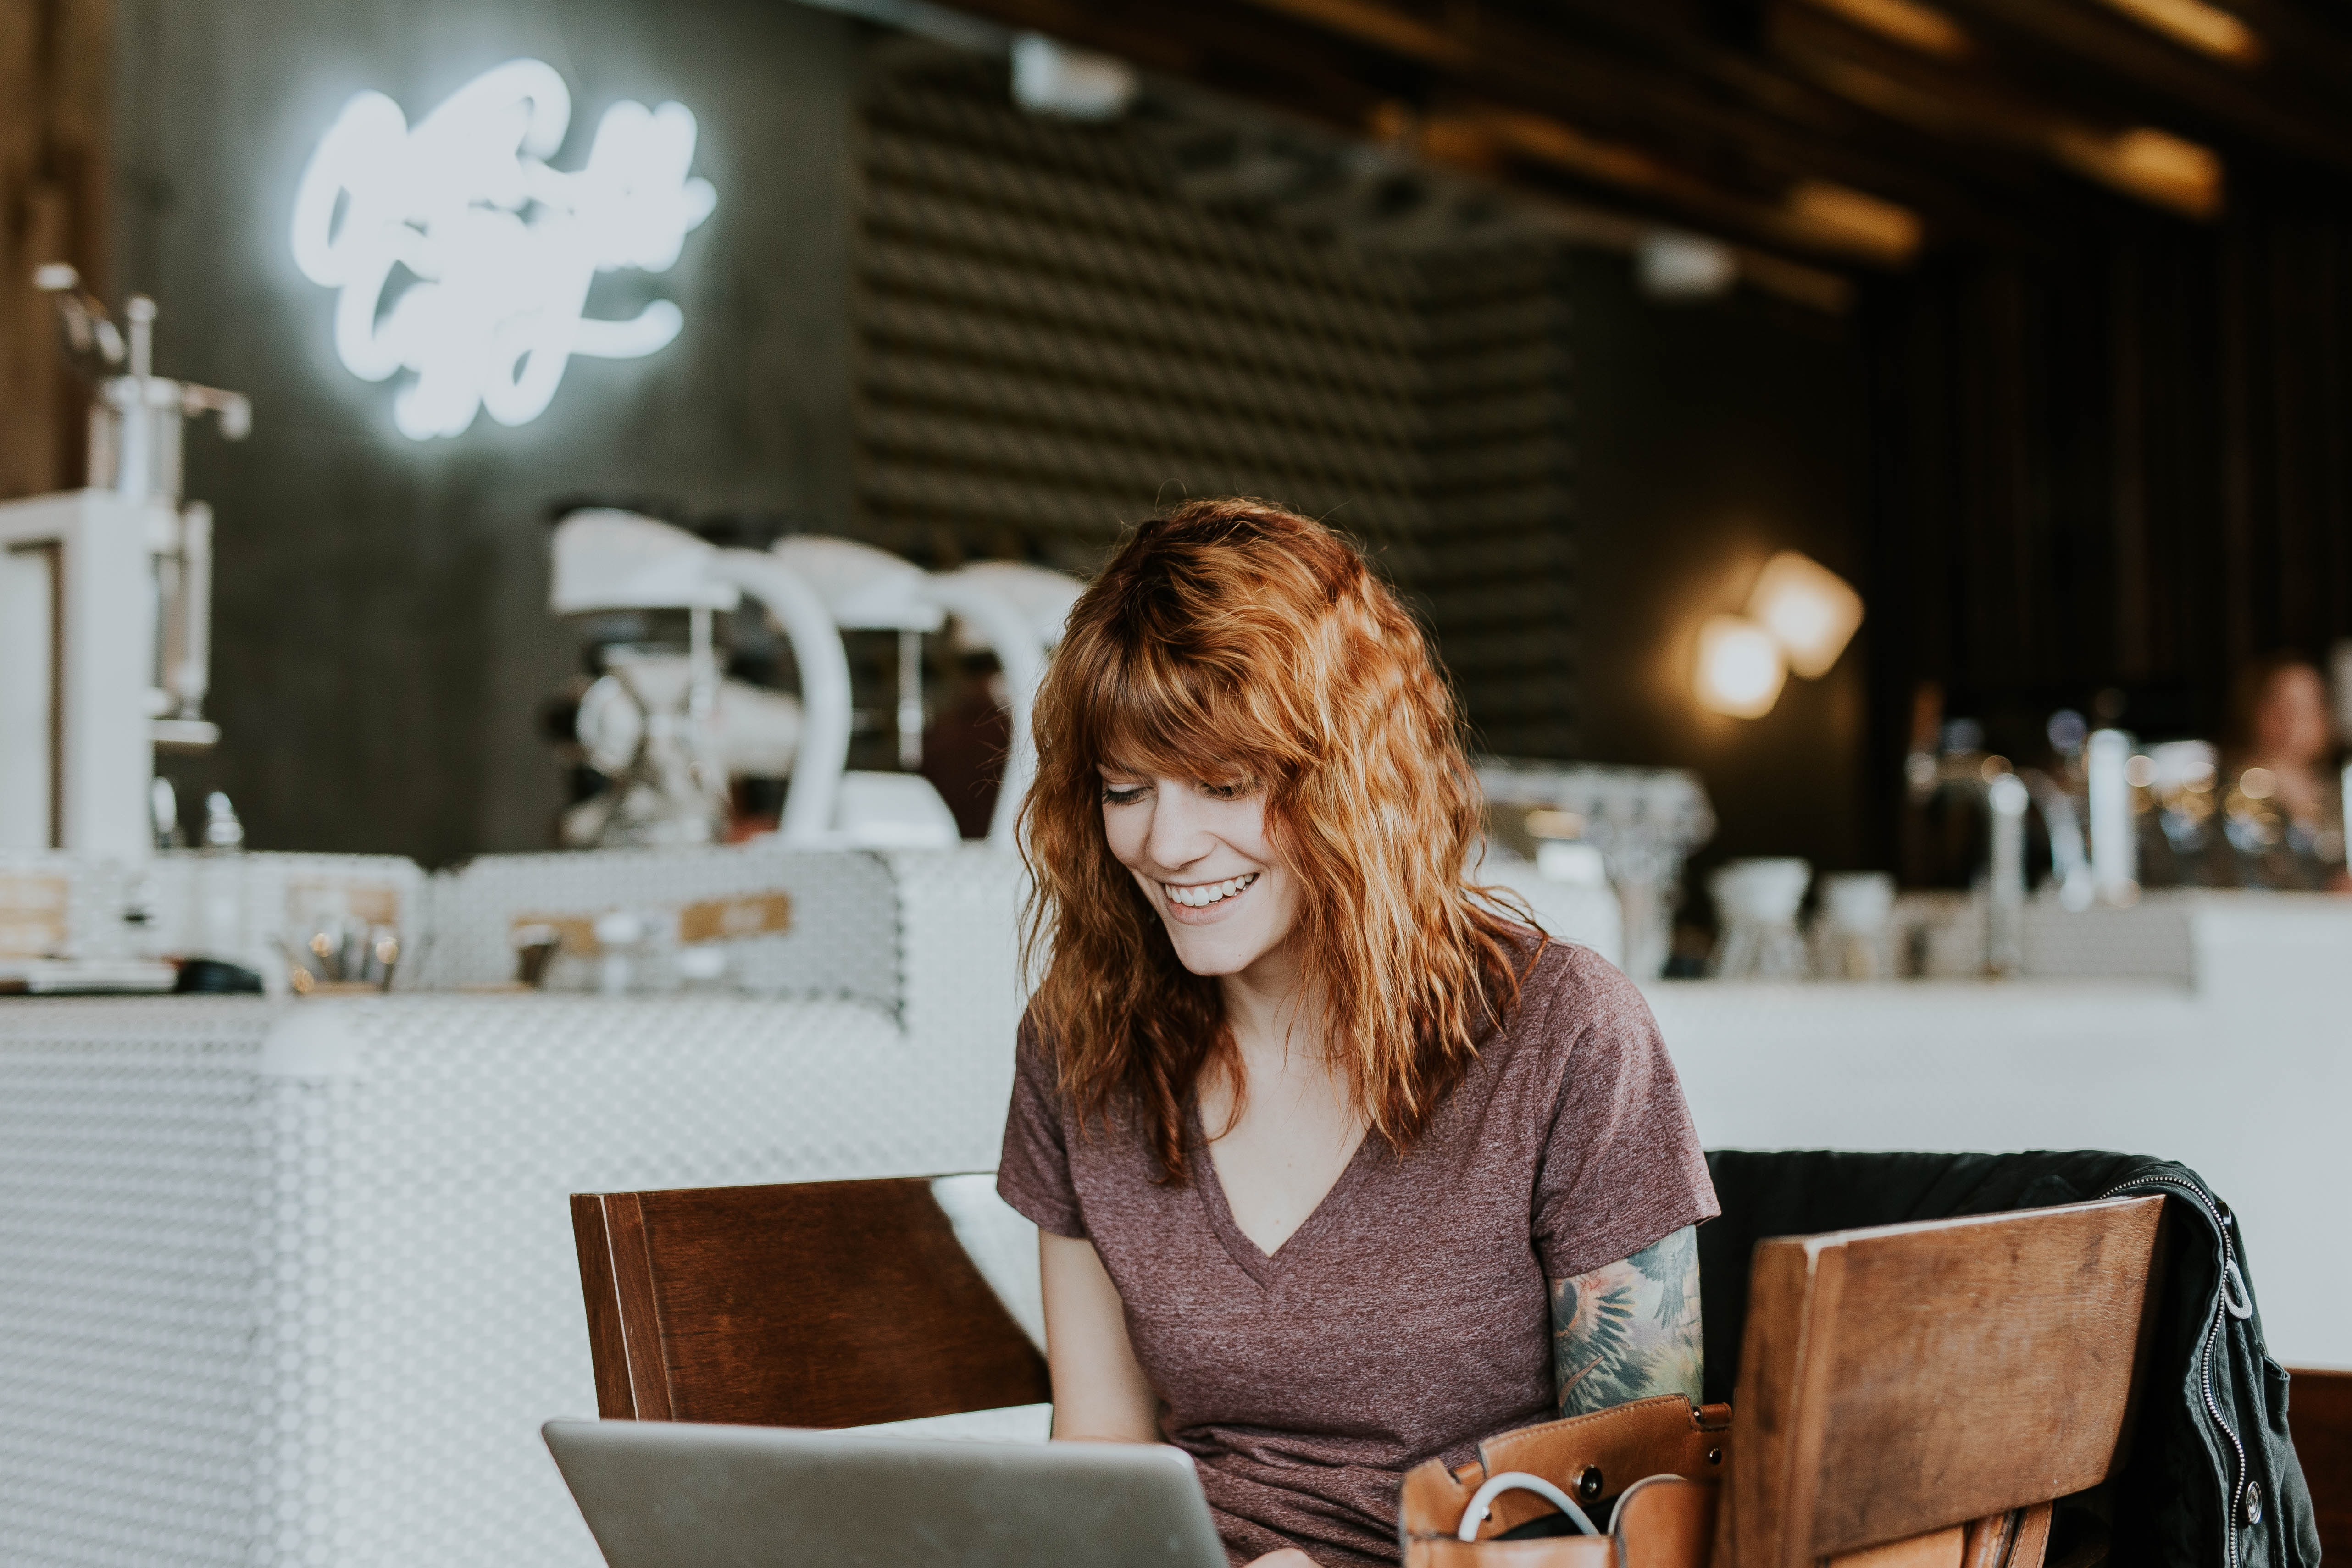 A red-headed woman smiles while working on her laptop in a cafe.